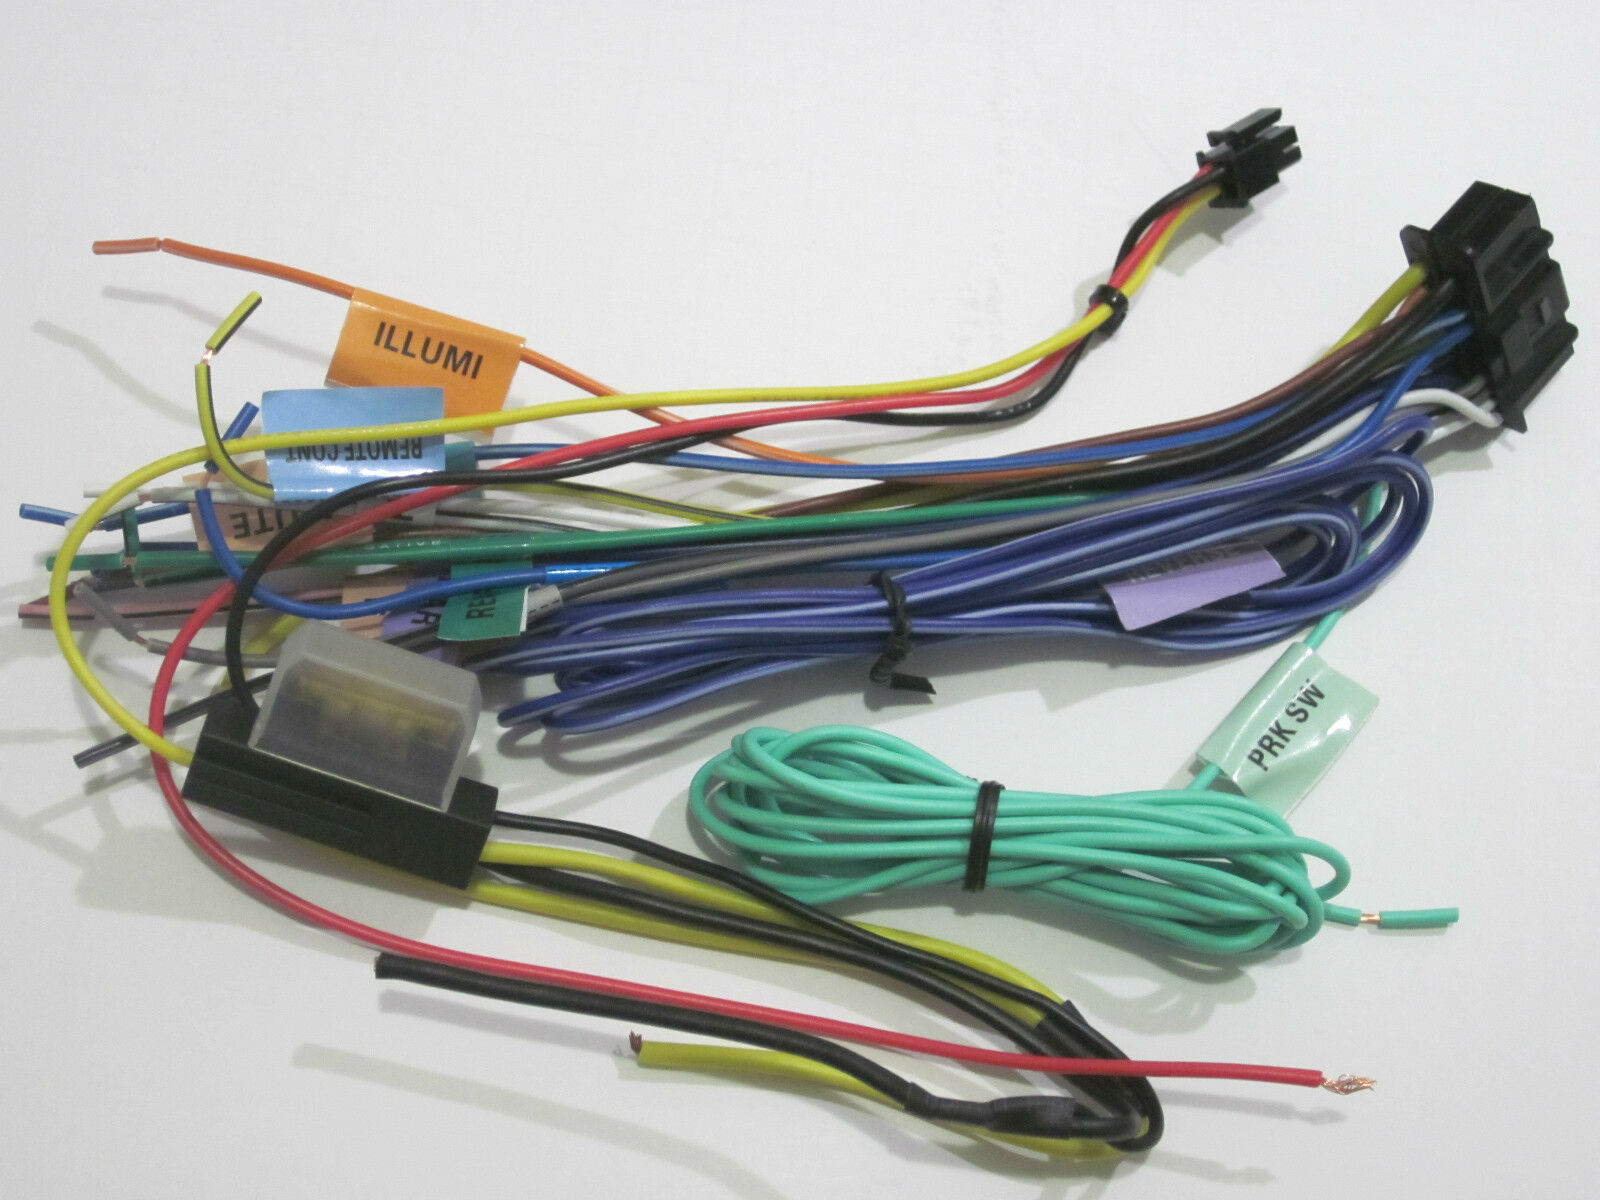 Kenwood Wire Harness Ddx8019 New Bl 1398 Picclick Ddx512 1 Of 2free Shipping